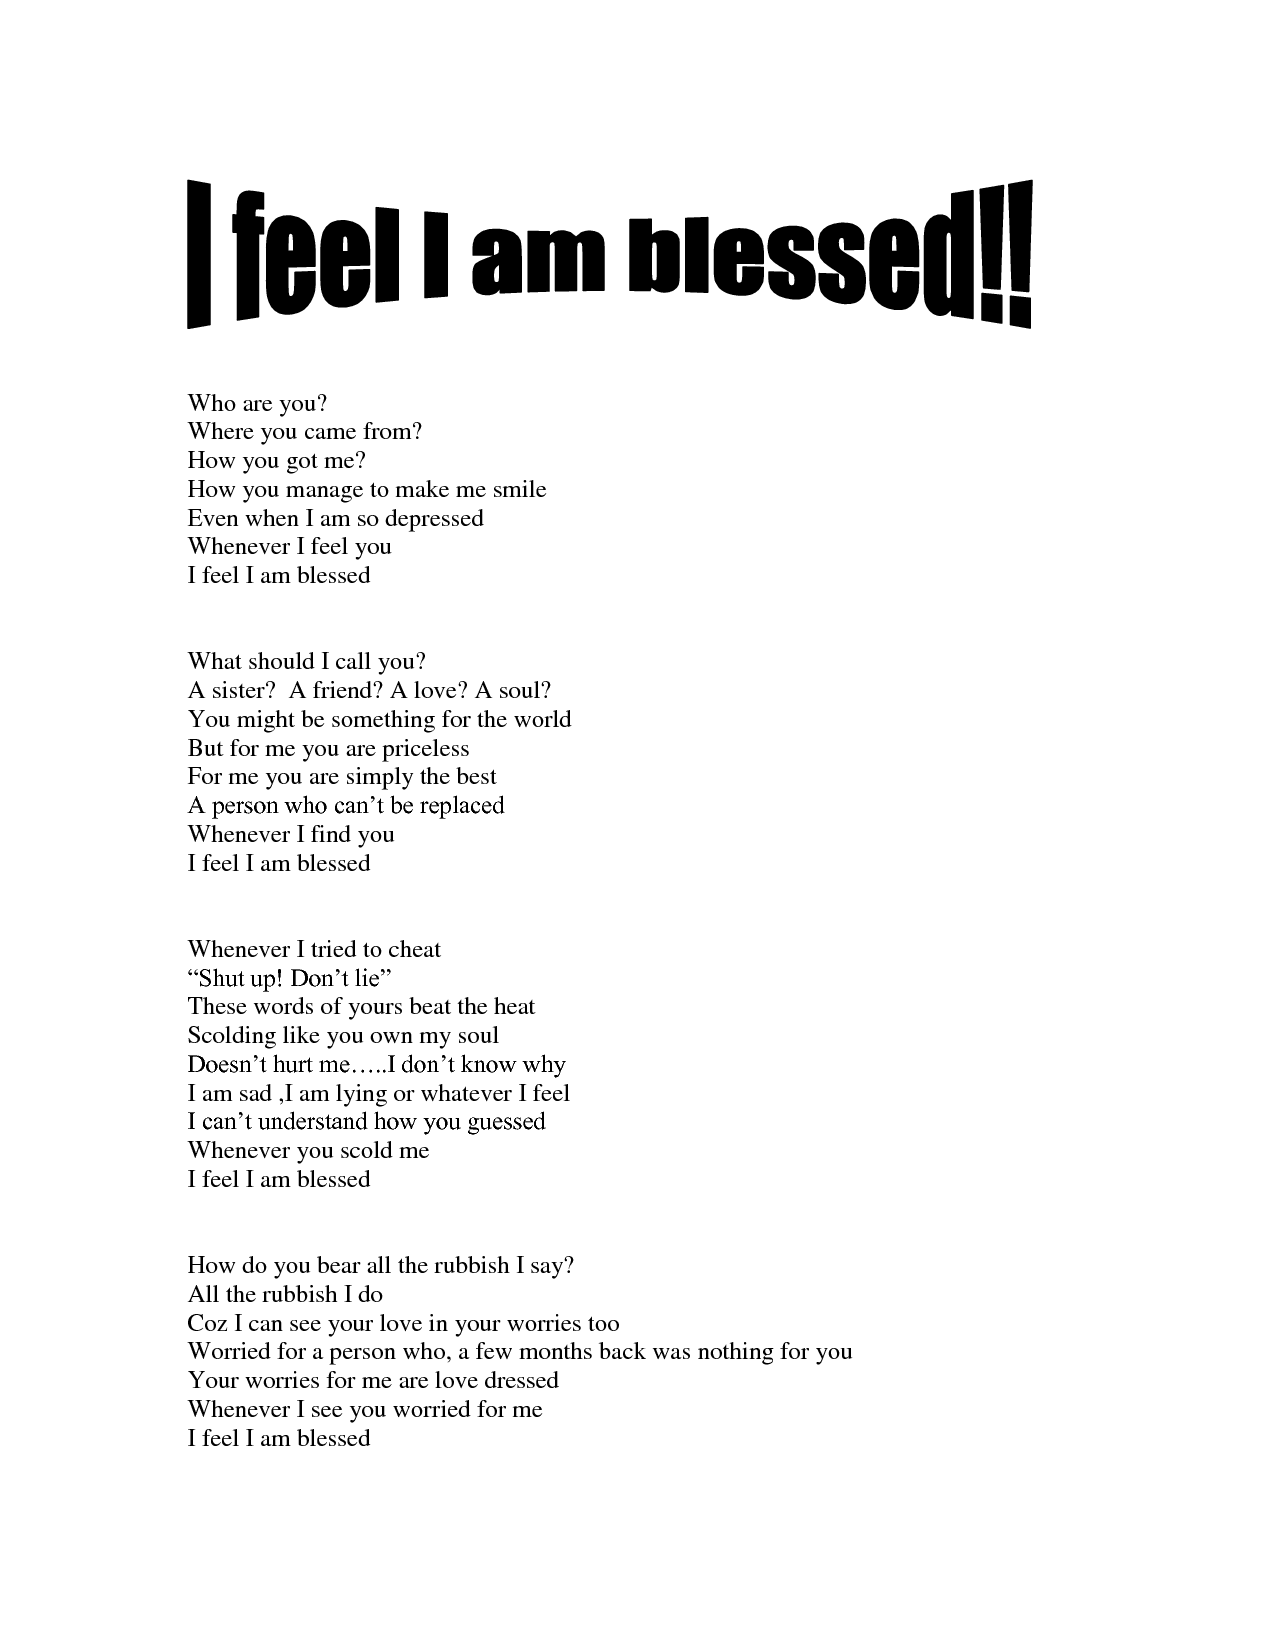 I AM Blessed Poems | feel I am blessed | Places to Visit